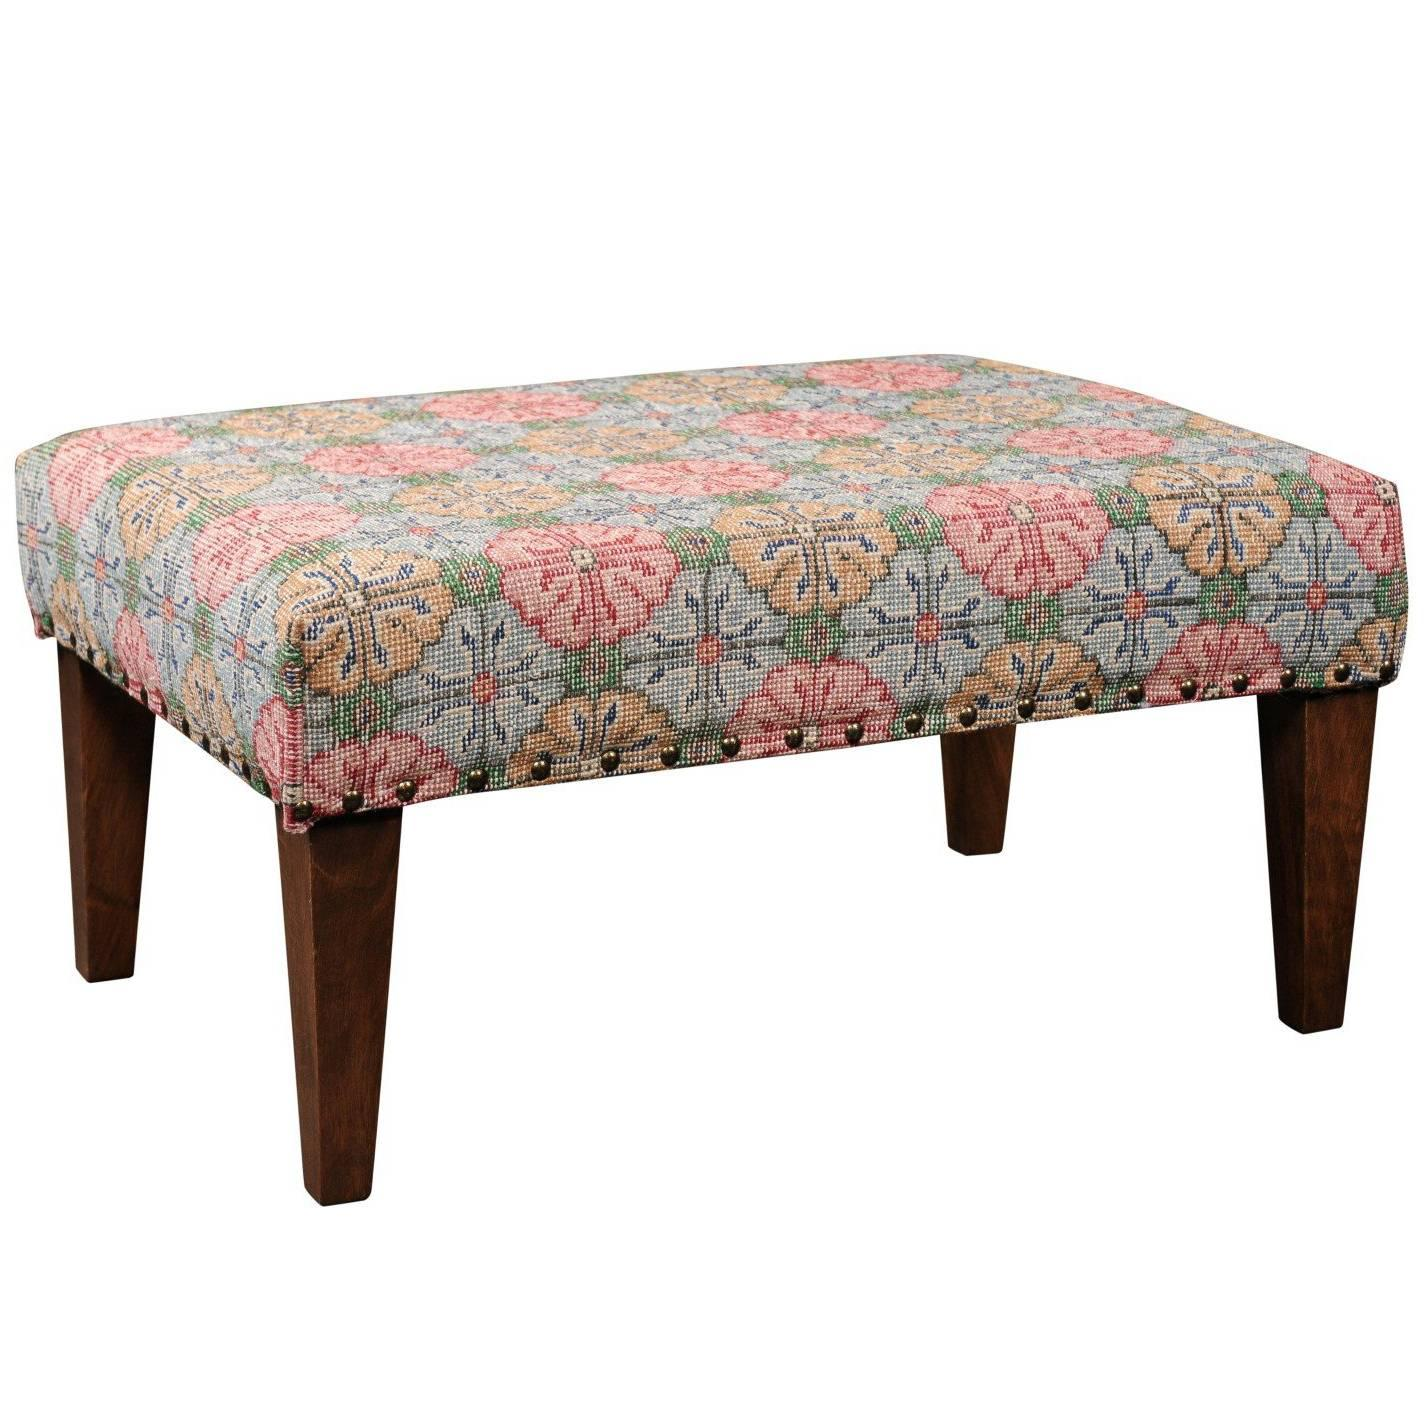 Upholstered Ottoman Made Of Midcentury Colorful Turkish Rug Over Custom  Base For Sale